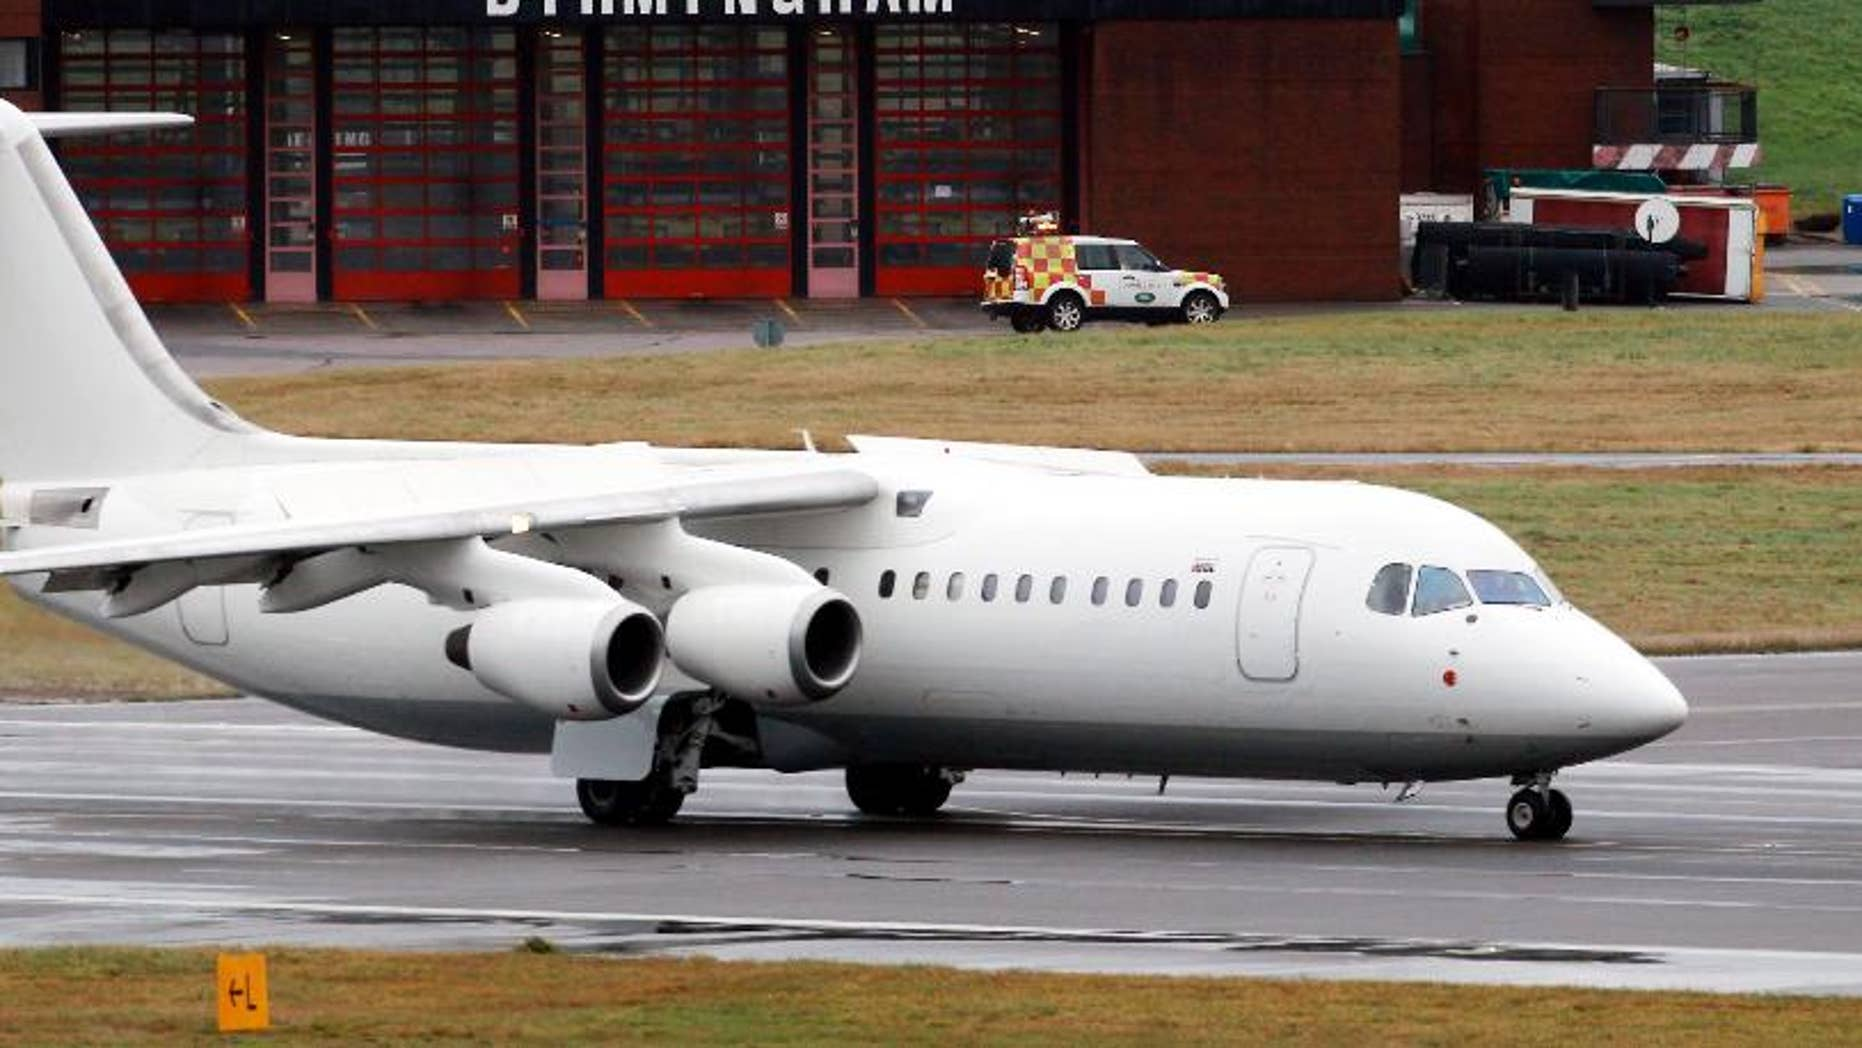 FILE - This is a Nov. 11, 2012 file photo taken at Birmingham Airport in central England of a BAE 146 aircraft similar to the one which has crashed in Colombia Tuesday Nov. 29, 2016.